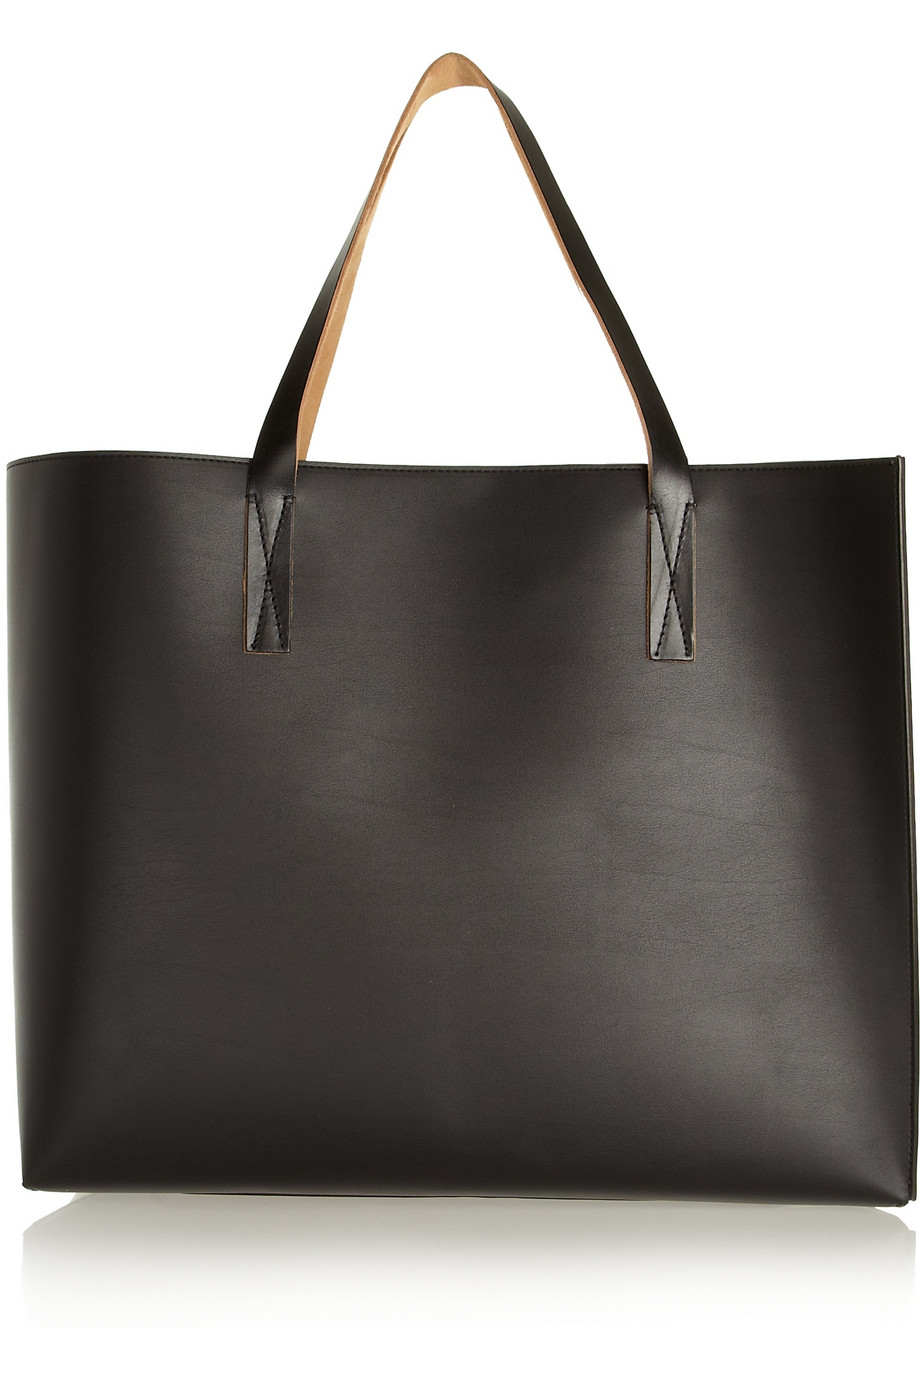 Marni Large Faux Leather Tote In Black Lyst